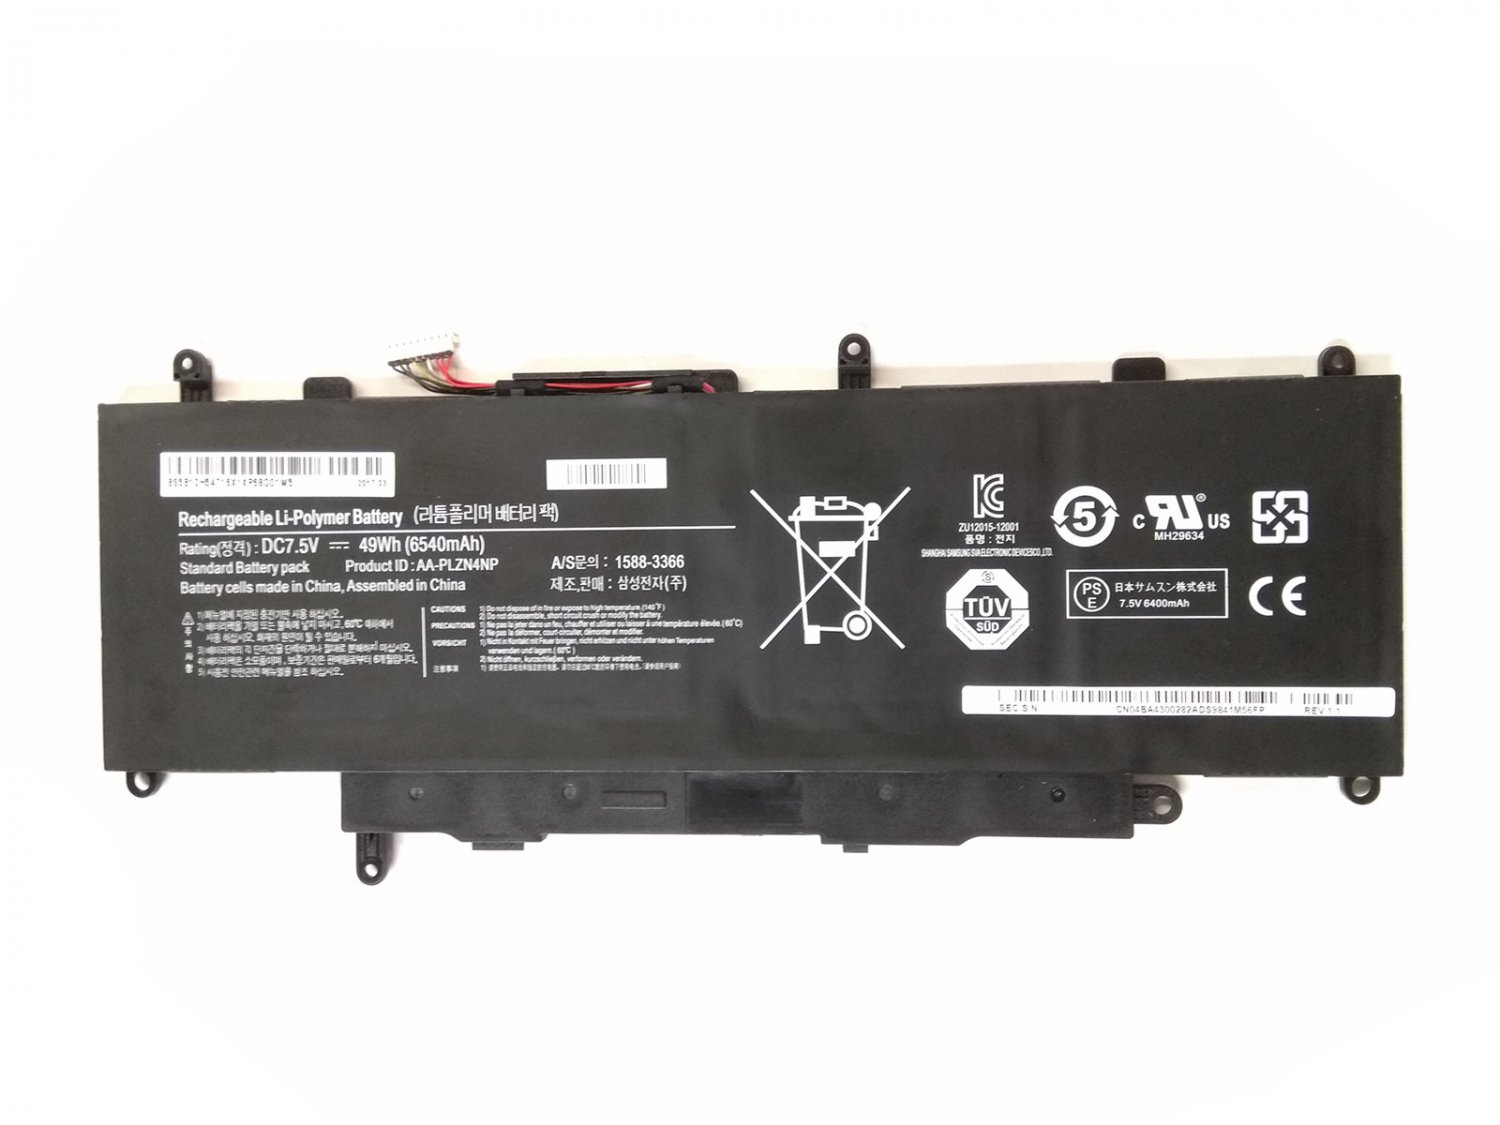 AA-PLZN4NP Battery For Samsung ATIV XE700T1C-A02FR XE700T1C-A02NL